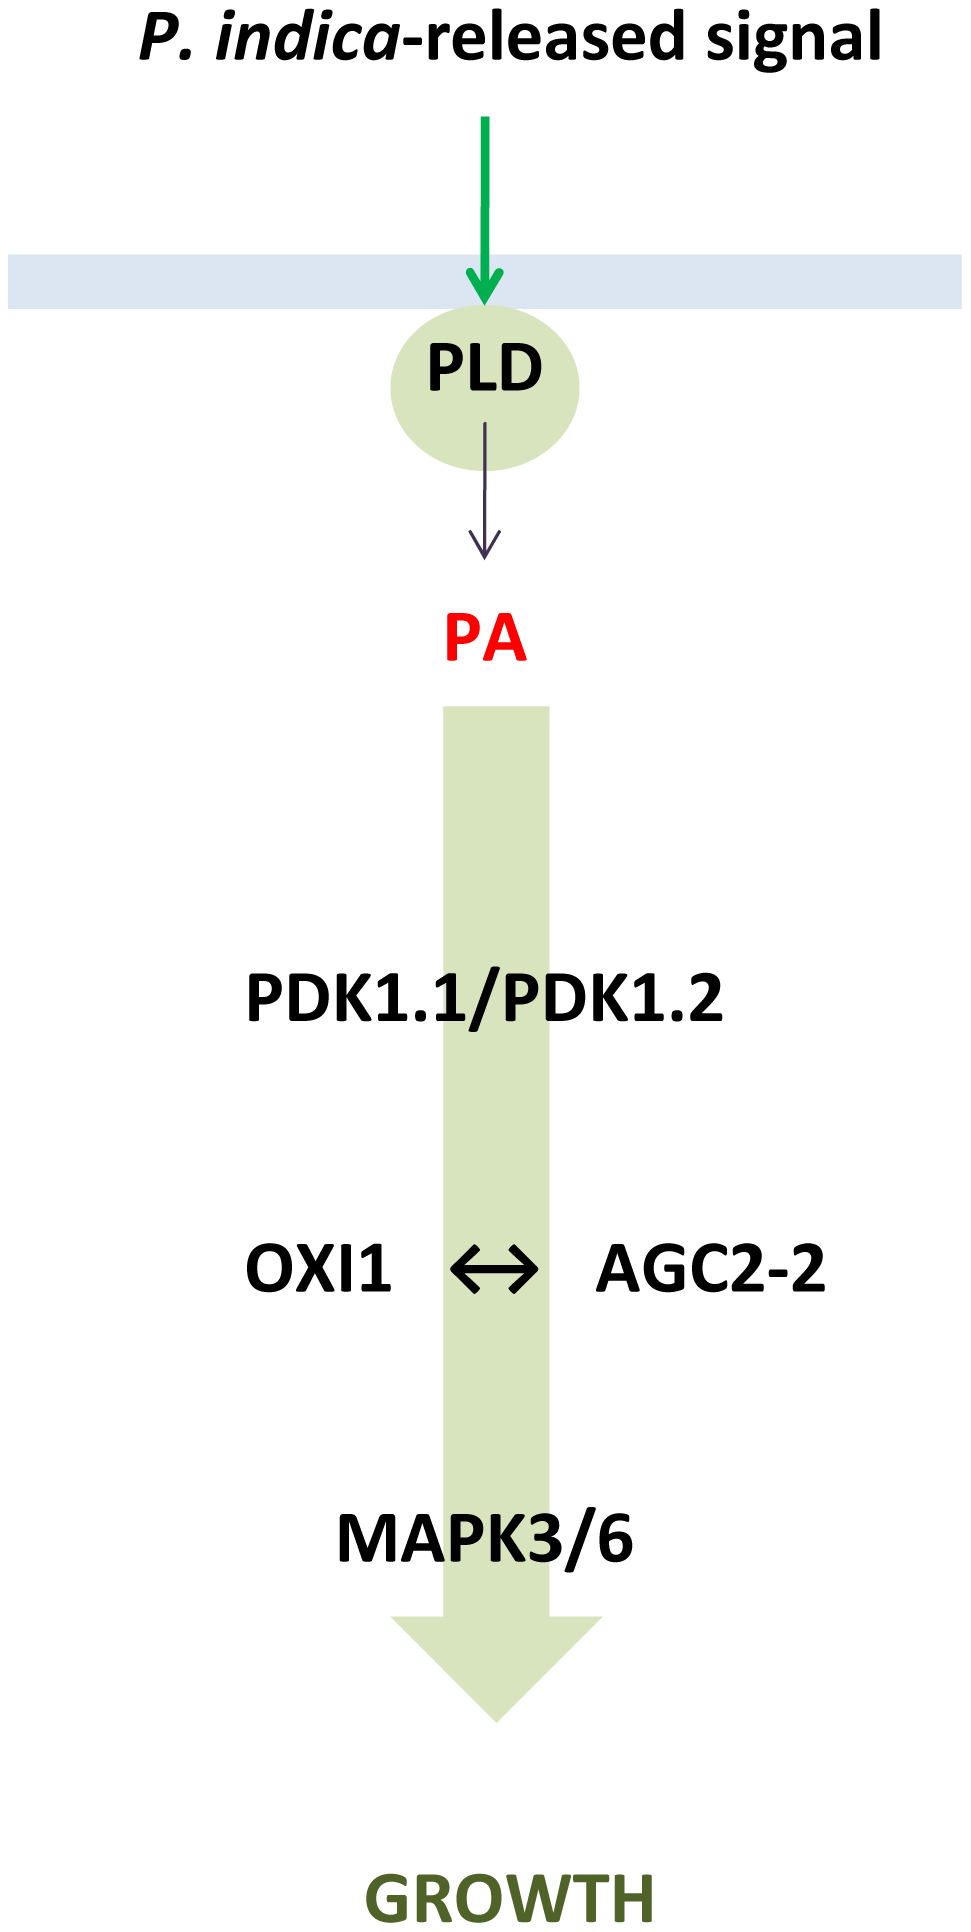 Proposed model describing the role of PLD, PA, AGC and MAP kinases in the beneficial interaction between <i>P. indica</i> and Arabidopsis.